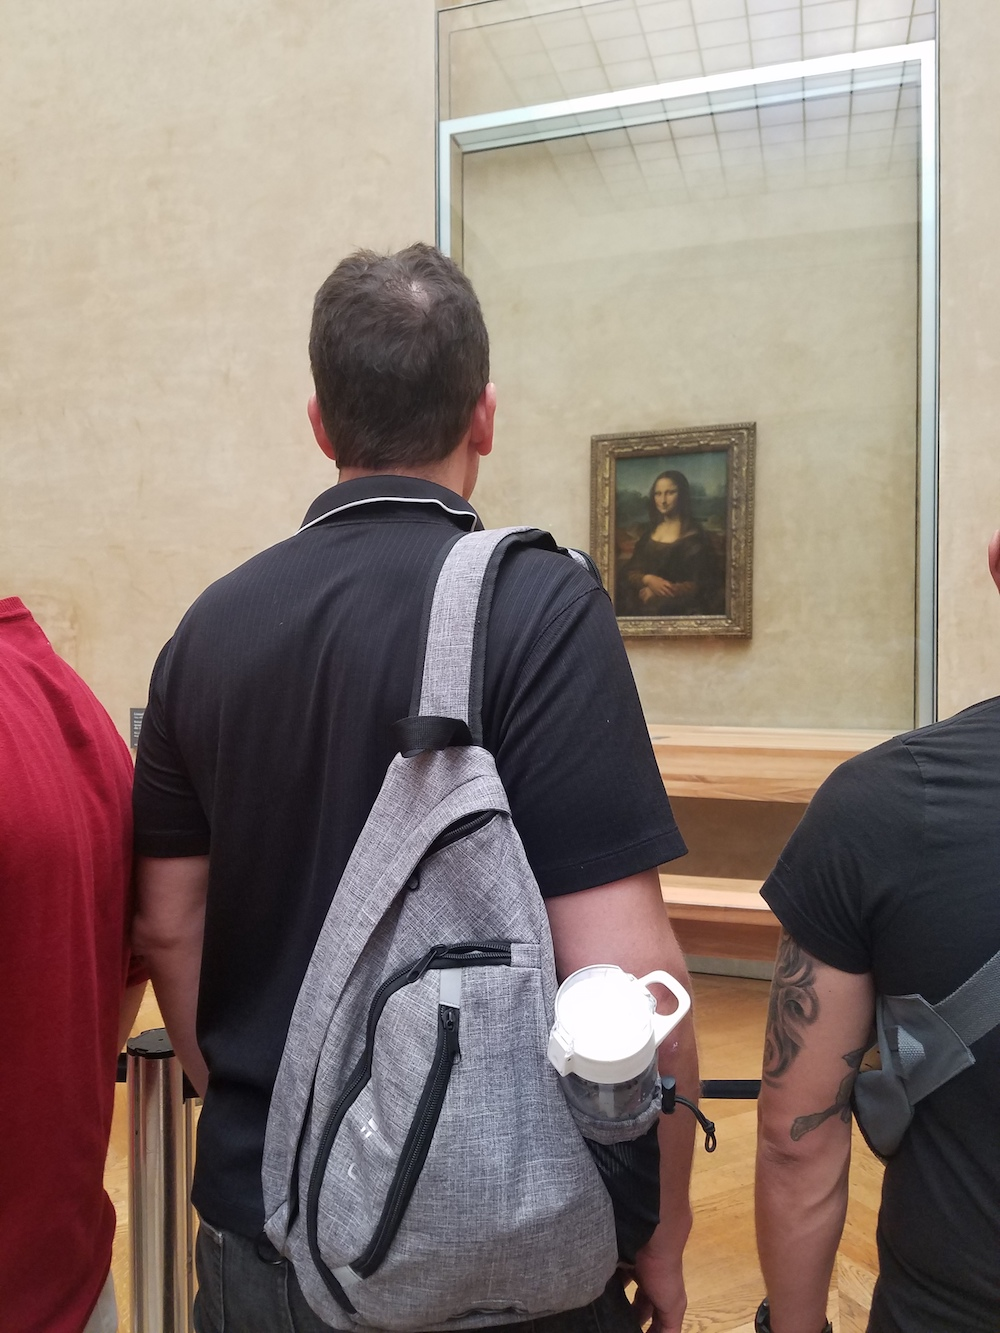 neatpack sling bag Monalisa by Da Vinci inside of The Louvre museum